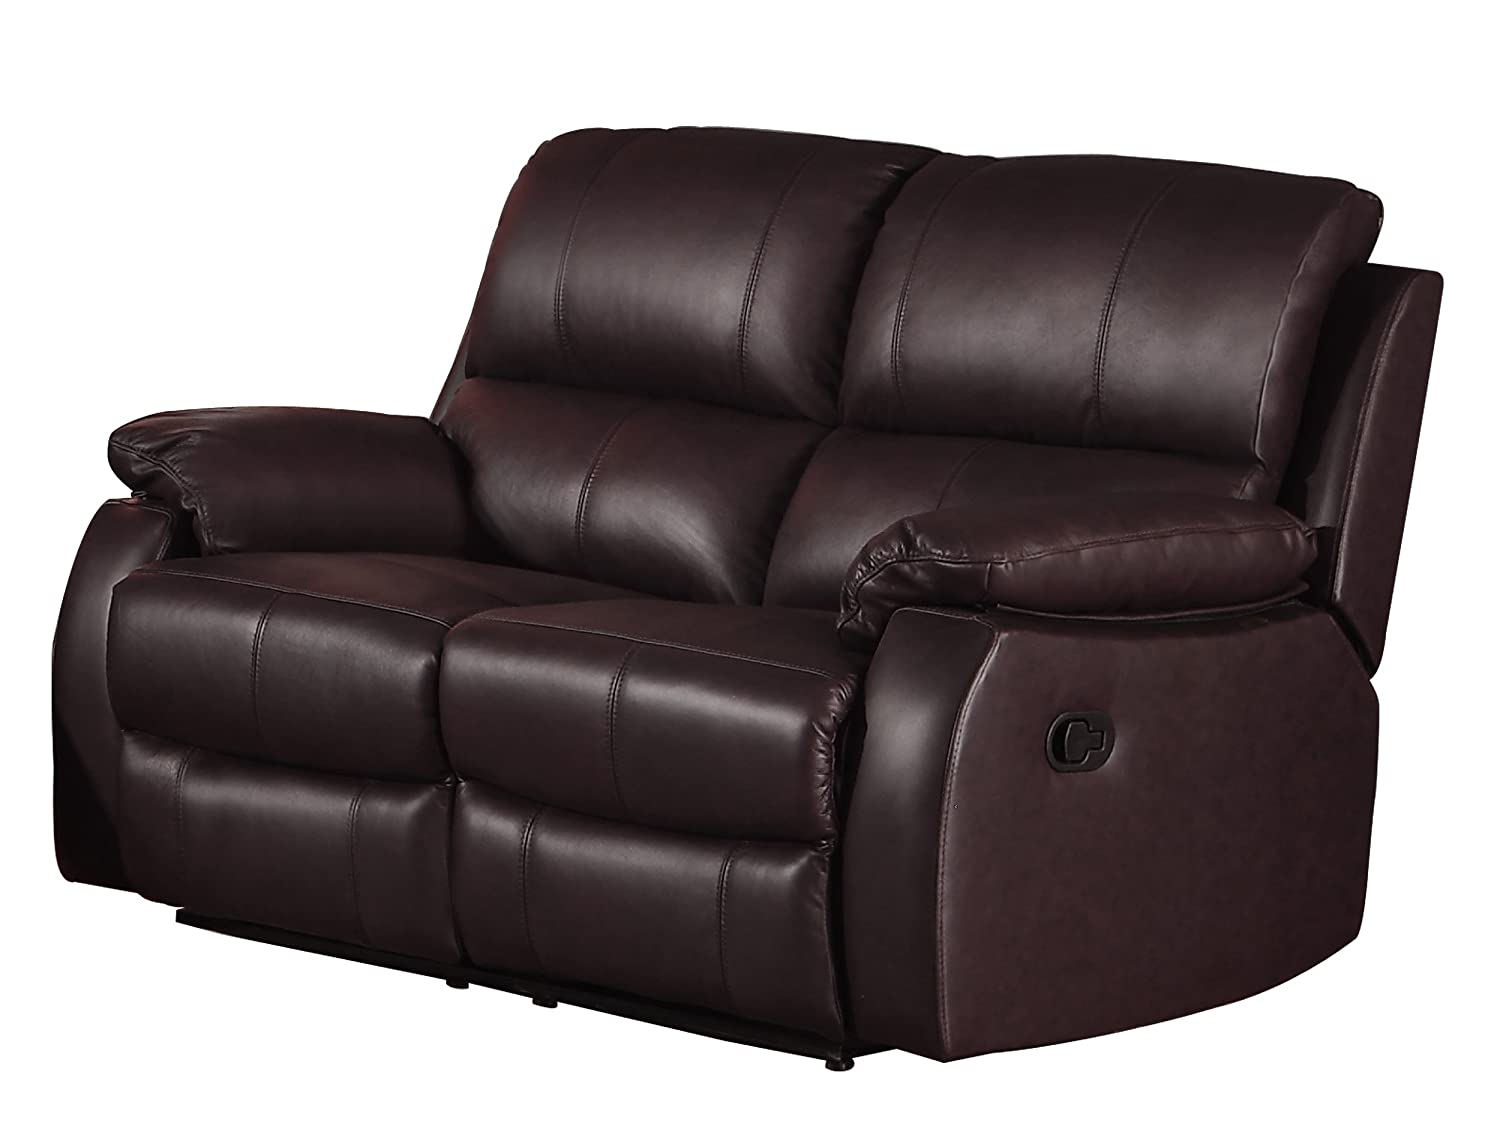 Homelegance Jedidiah Double Reclining Loveseat with Top Grain Leather Match - Chocolate